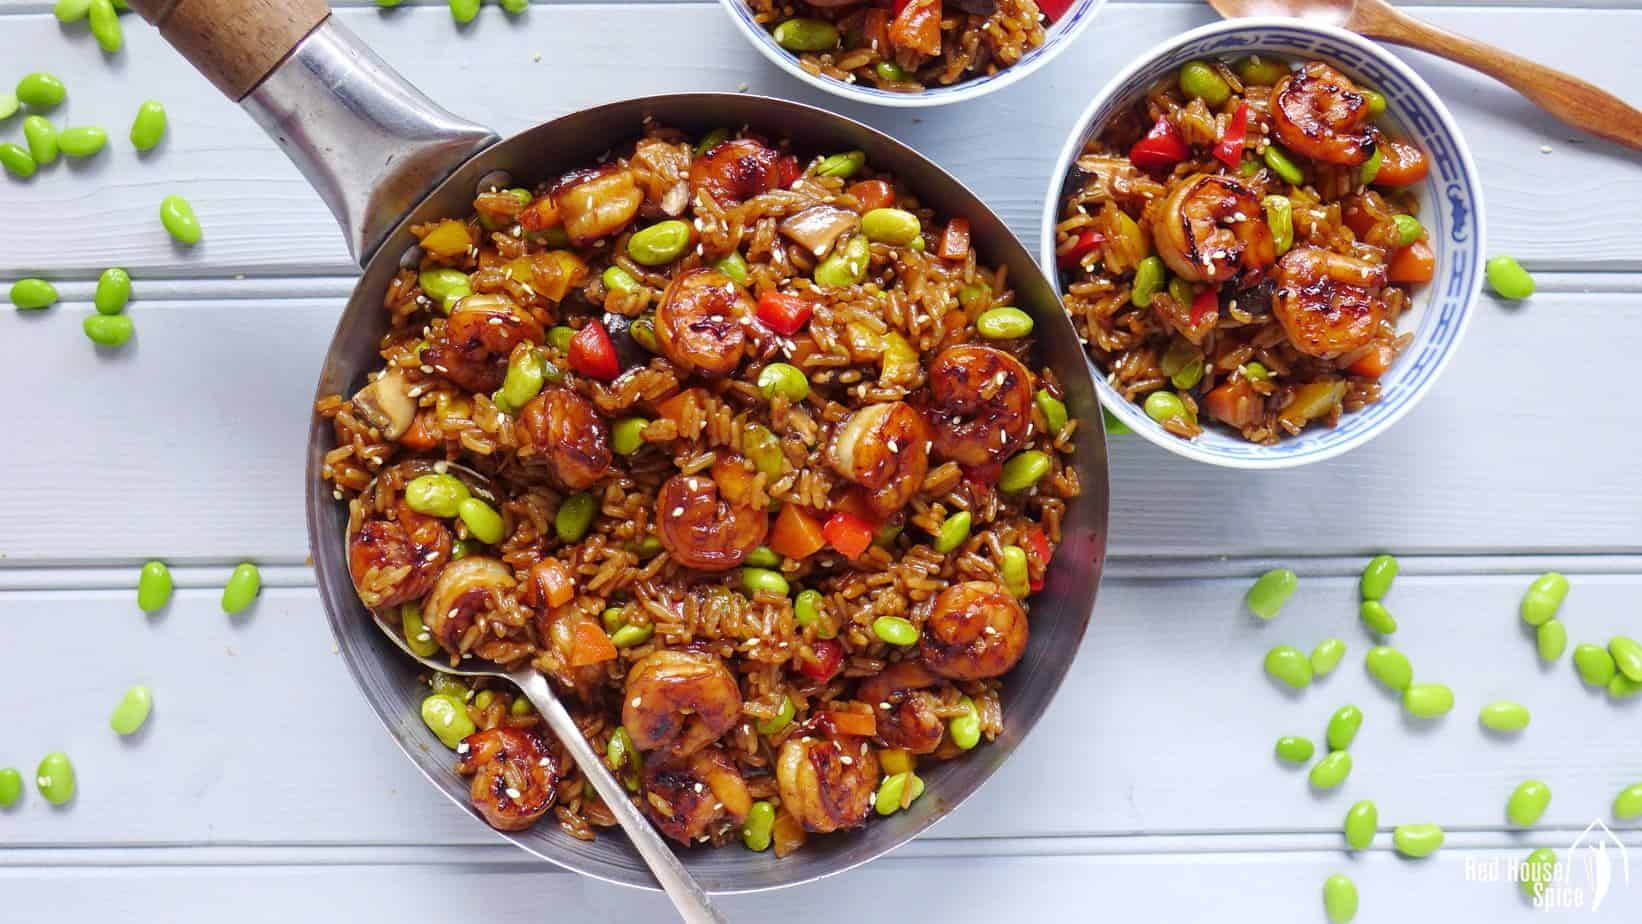 Chinese soy sauce rice pilaf (酱油炒饭)